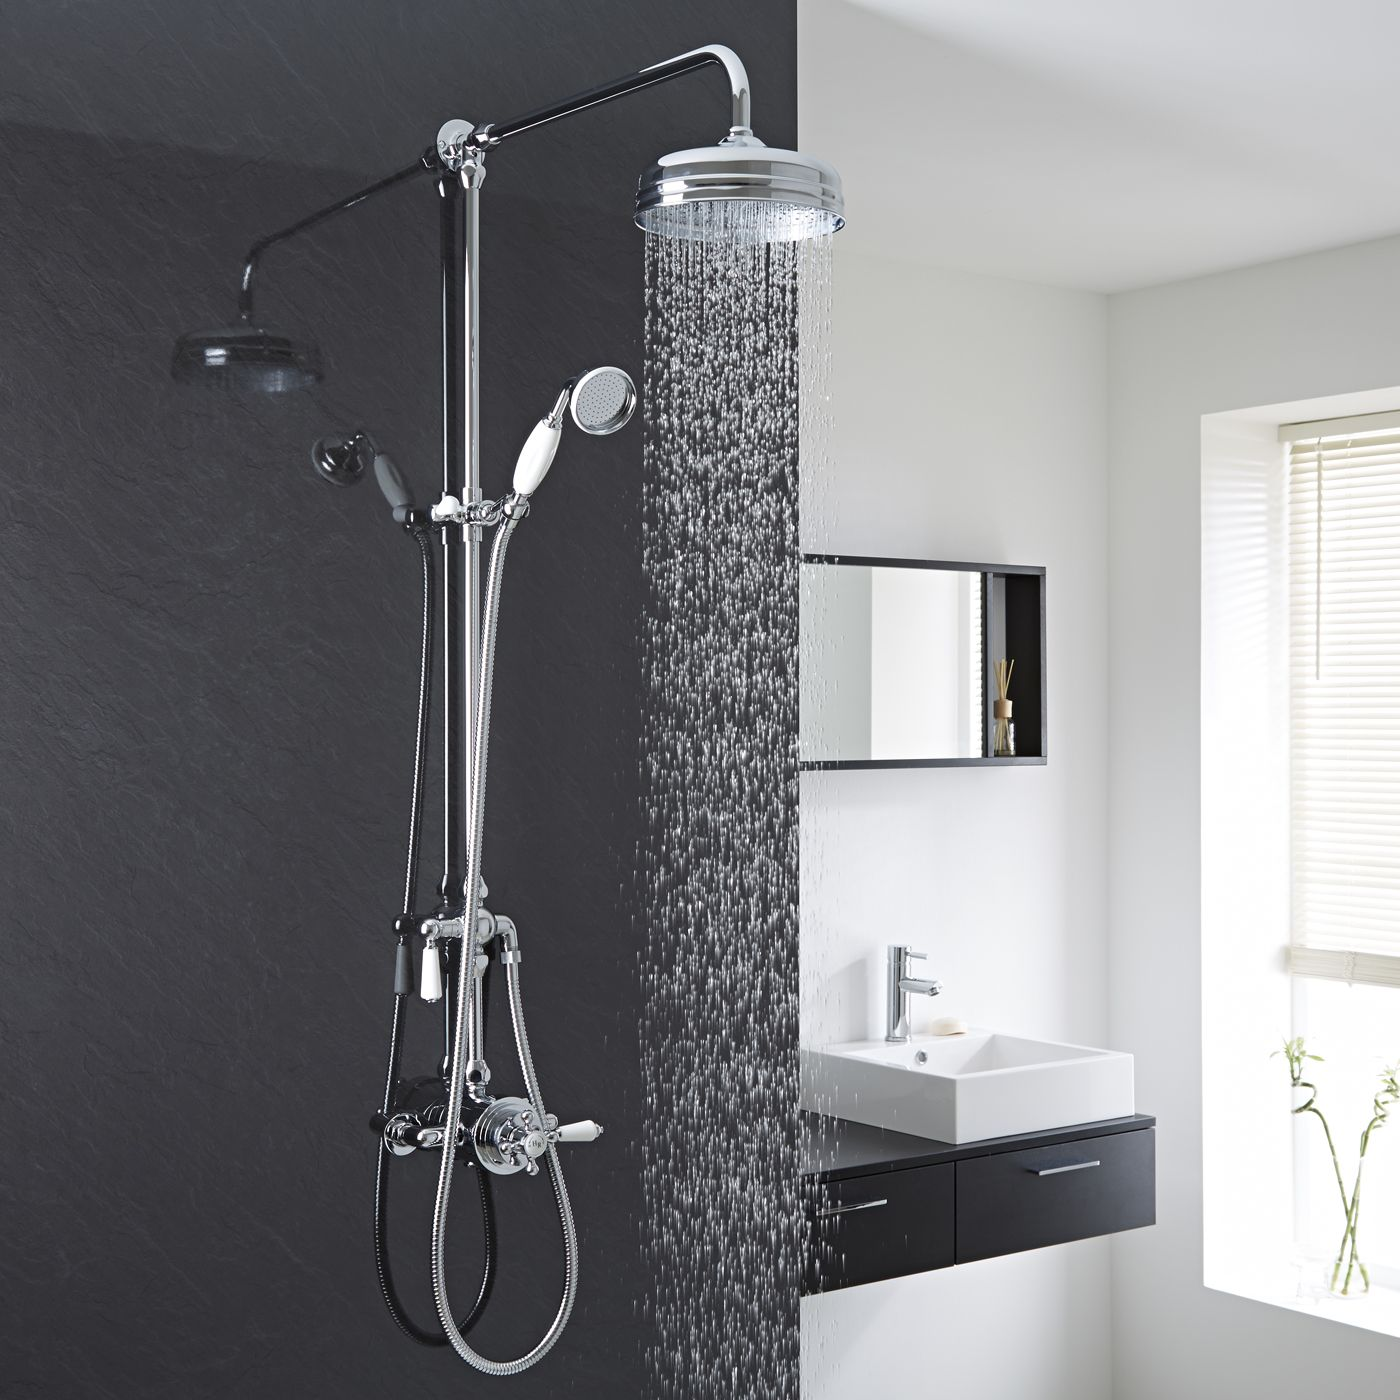 Dual Exposed Traditional Thermostatic Shower Valve with Grand Rigid Riser